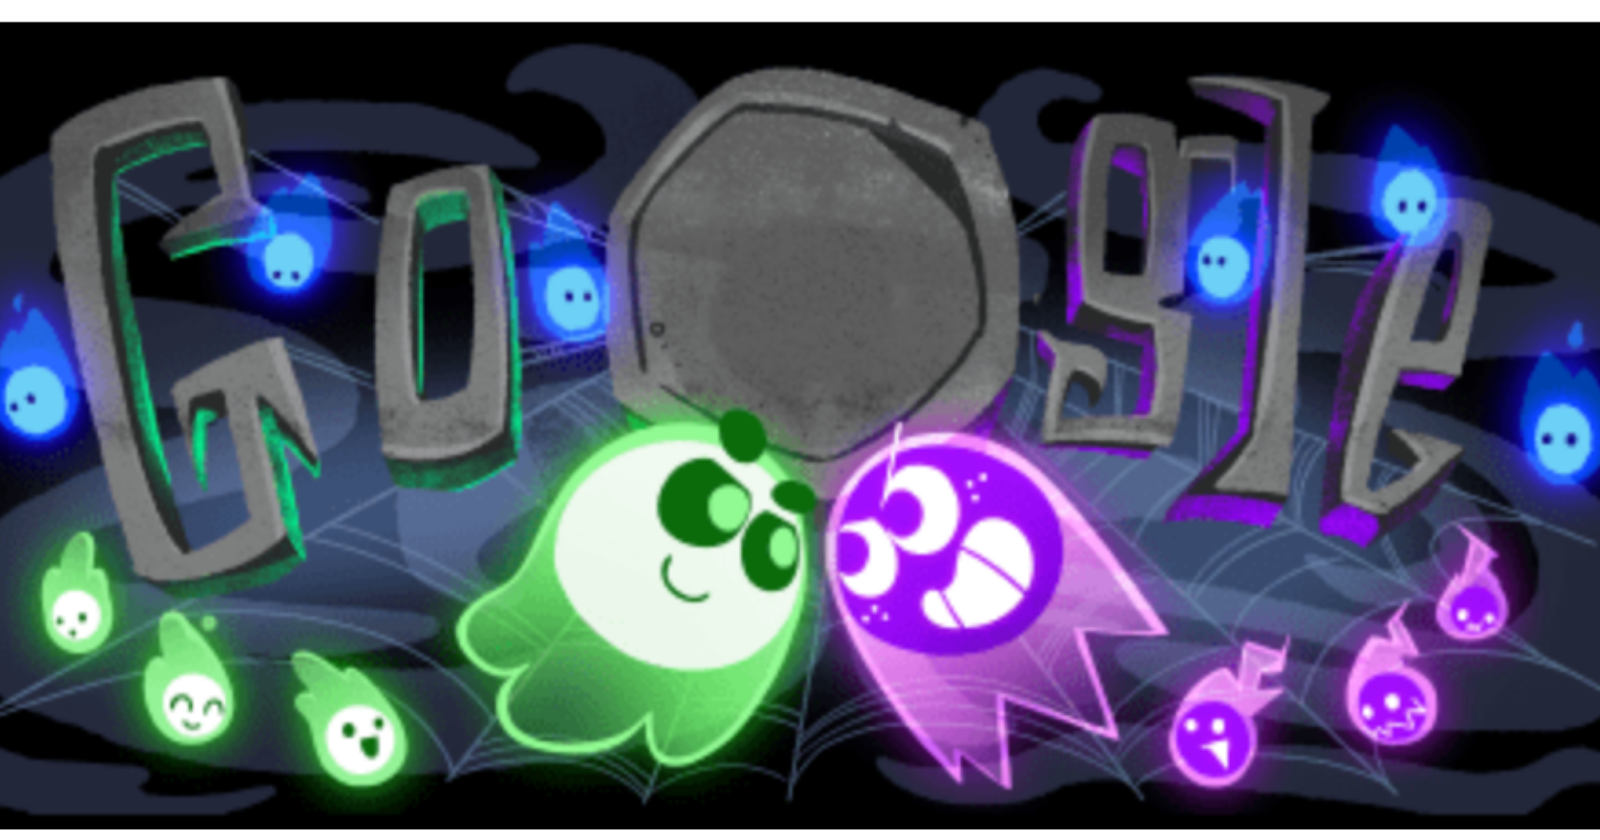 Google Celebrates Halloween With First Ever Multiplayer Google Doodle Google Doodles Google Doodle Halloween Google Halloween